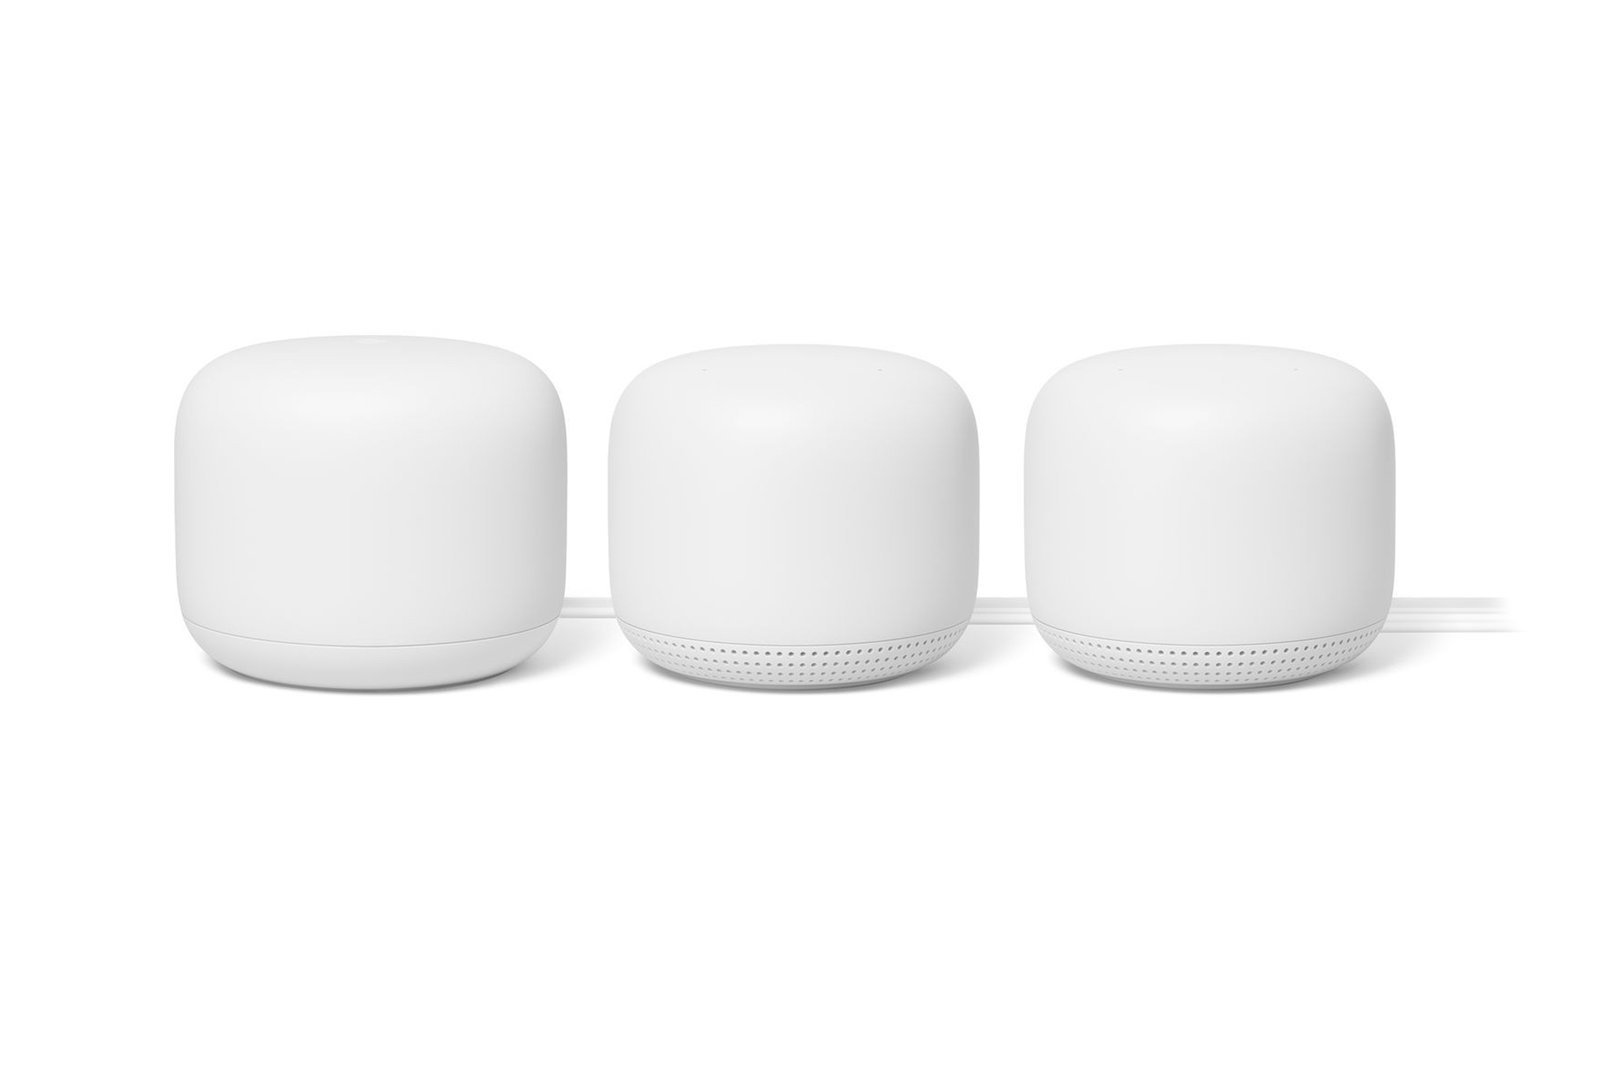 Google Nest Wifi Router and 2 extender points (GA00823-US) Snow